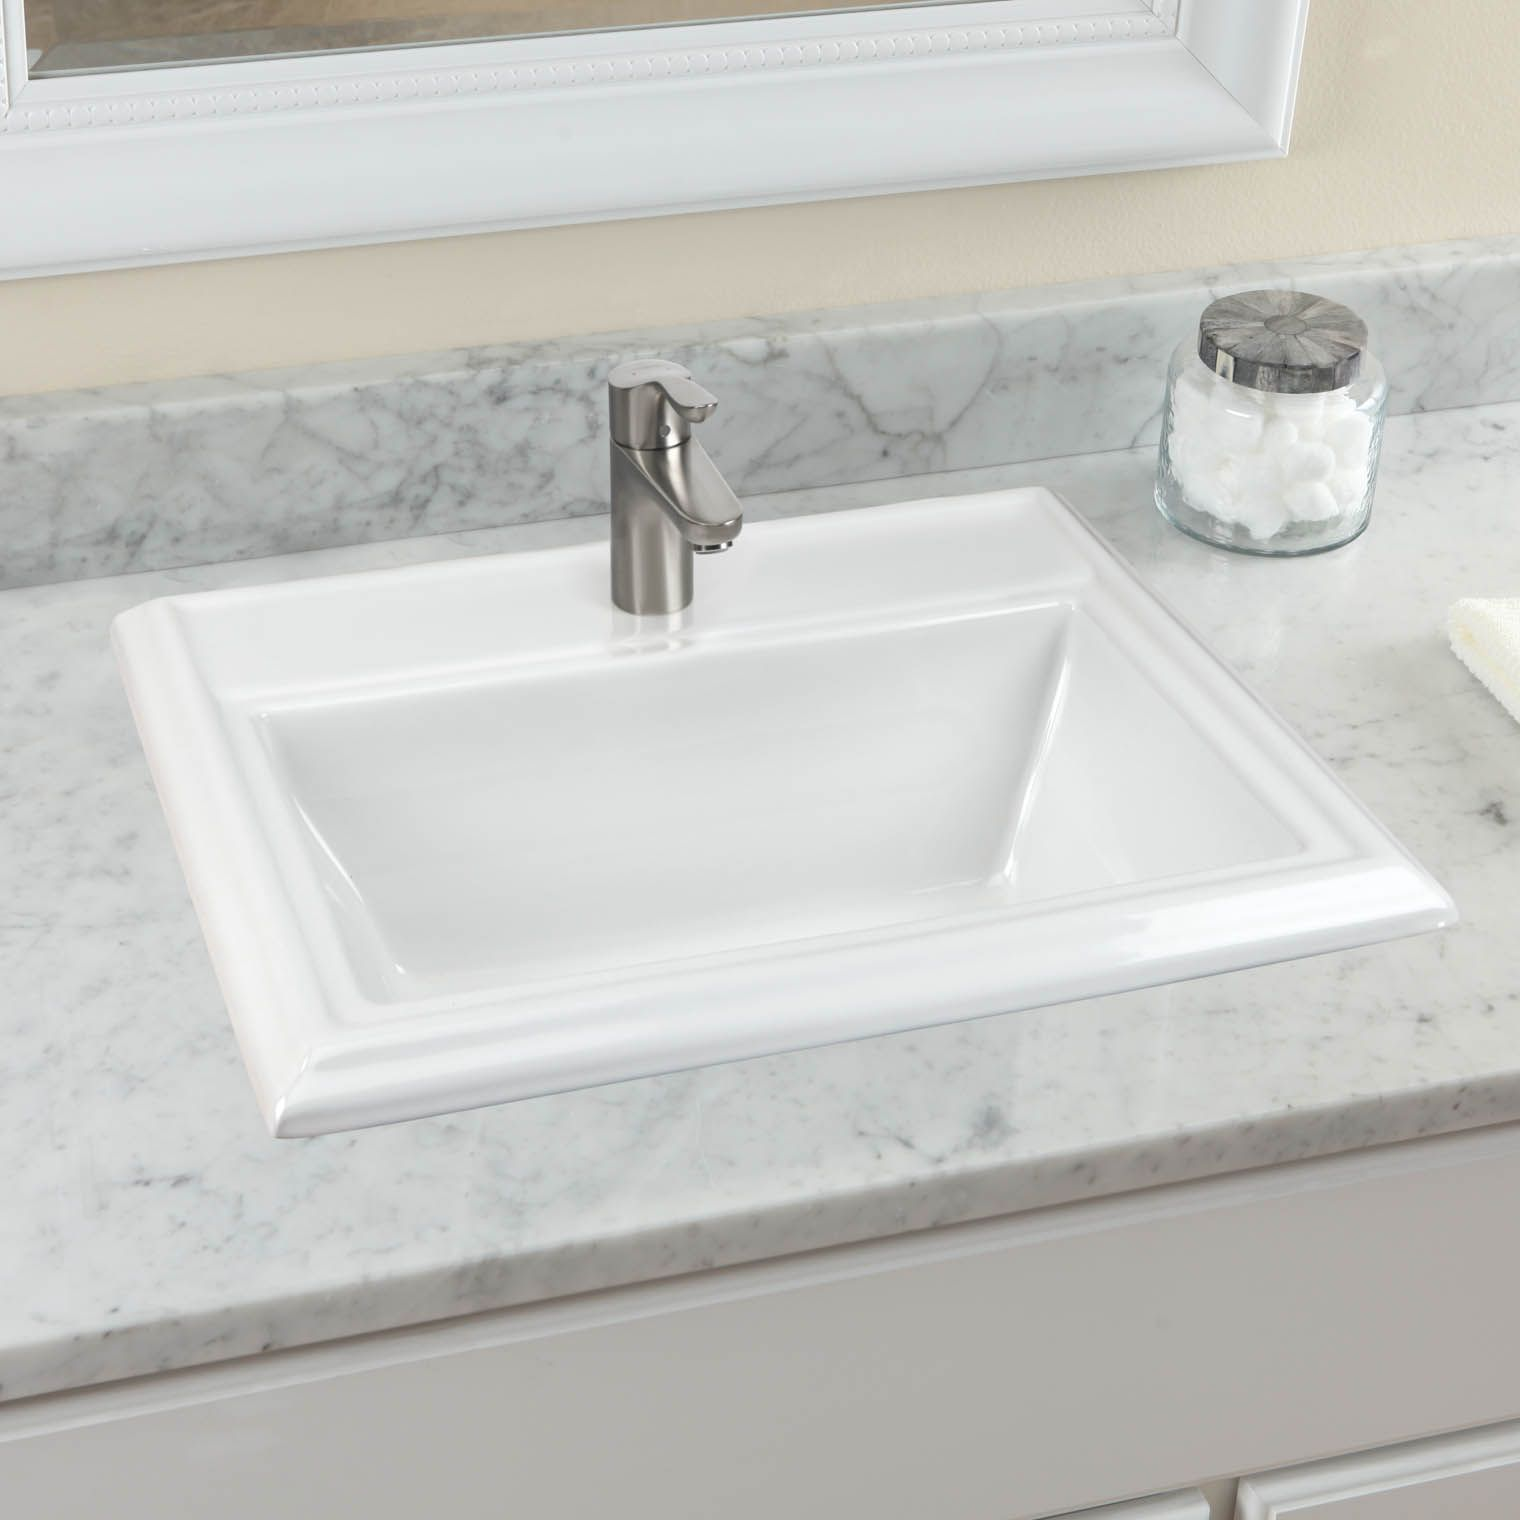 Town Square 23 1 8 Drop In Bathroom Sink For Single Hole Faucet American Standard Sinks And